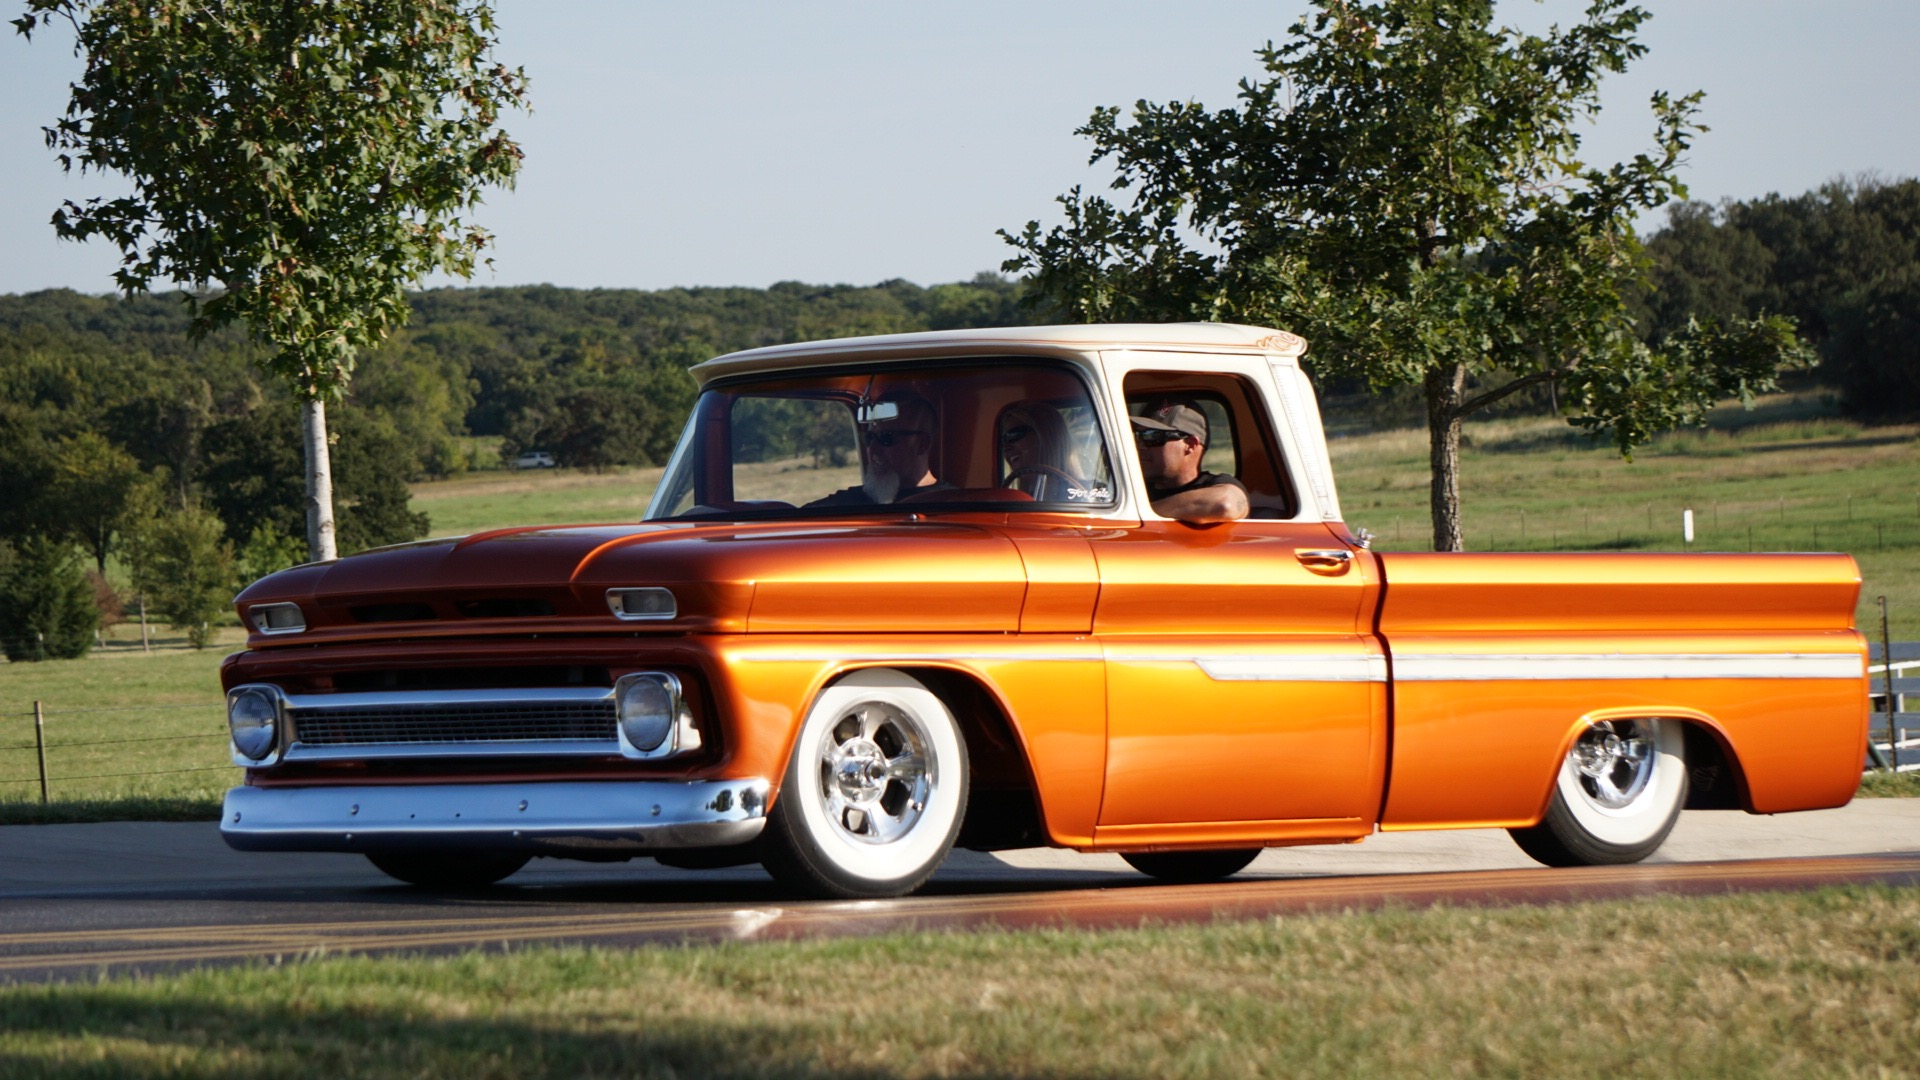 1962-Chevy-pickup.jpg